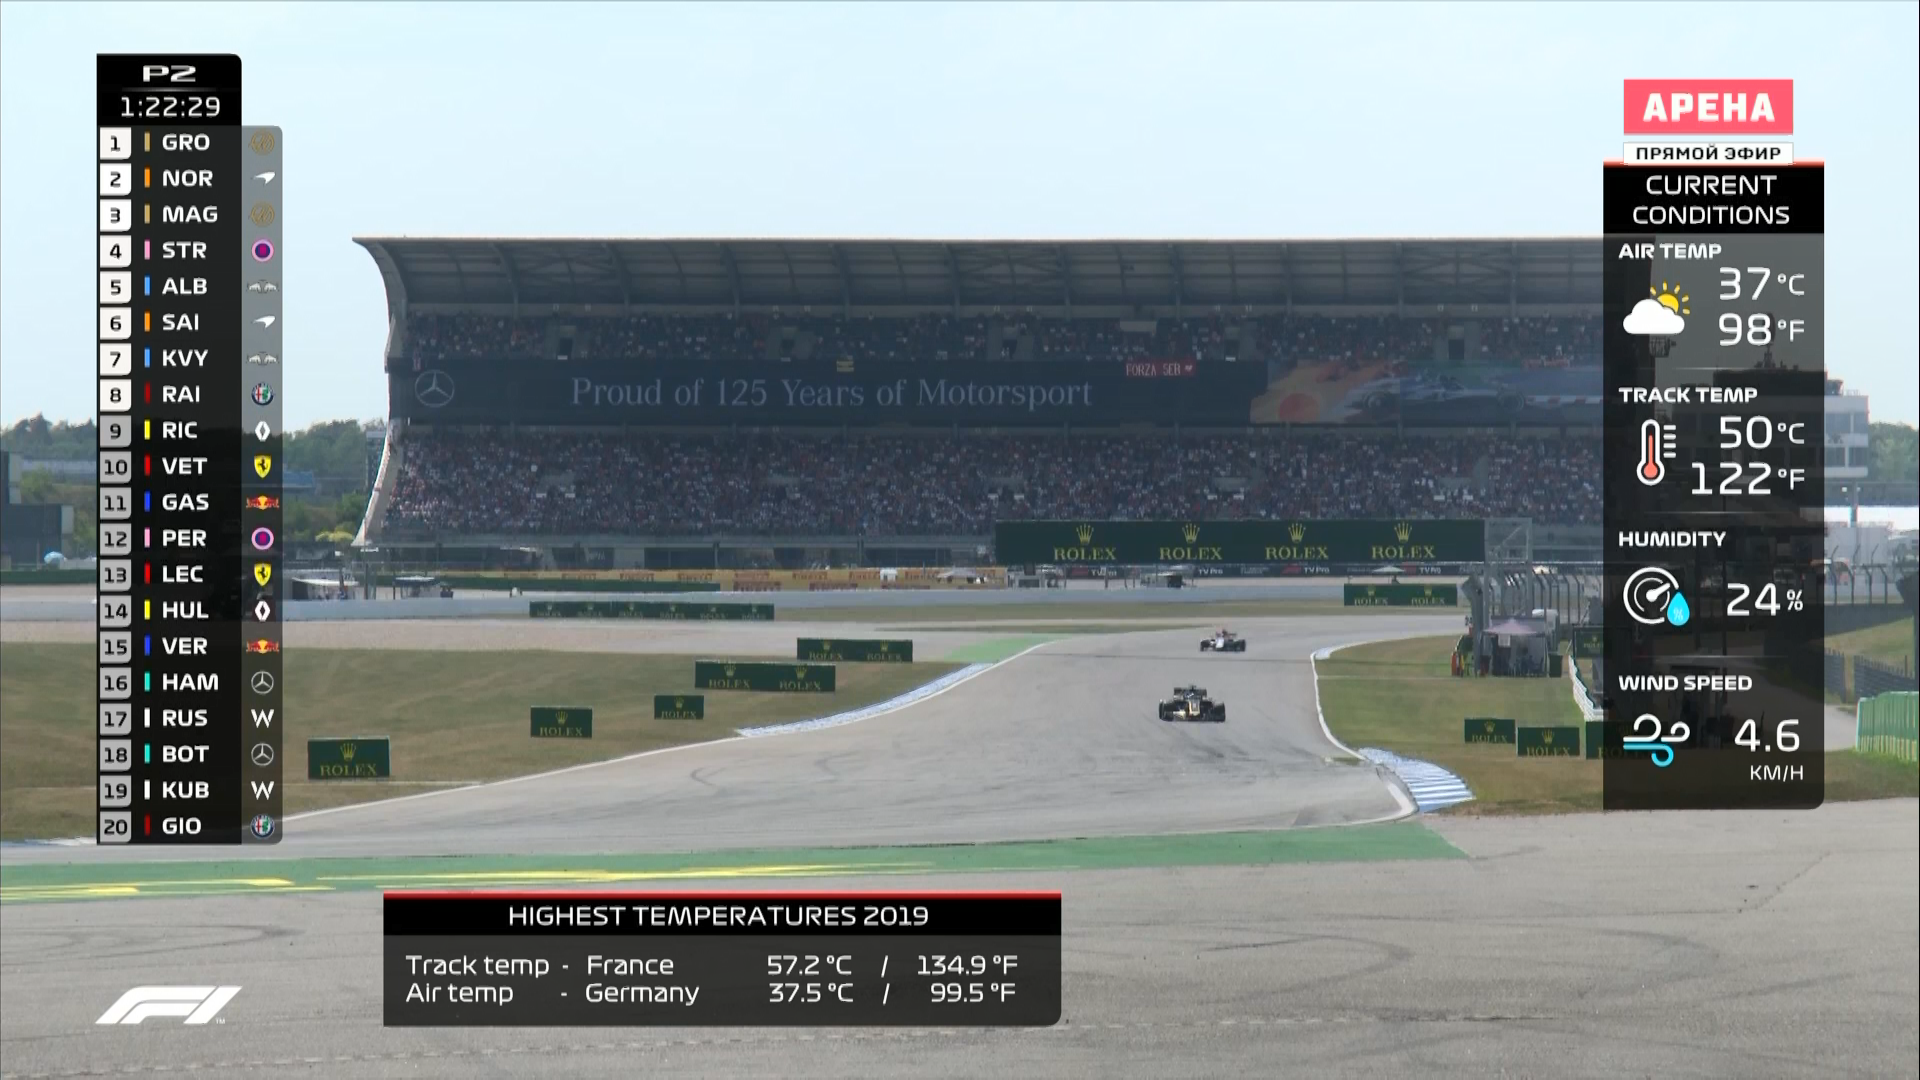 F-1.2019.11GPGermany.2ndPractice.ArenaHD.1080p.ts_snapshot_00.07.31.686.png